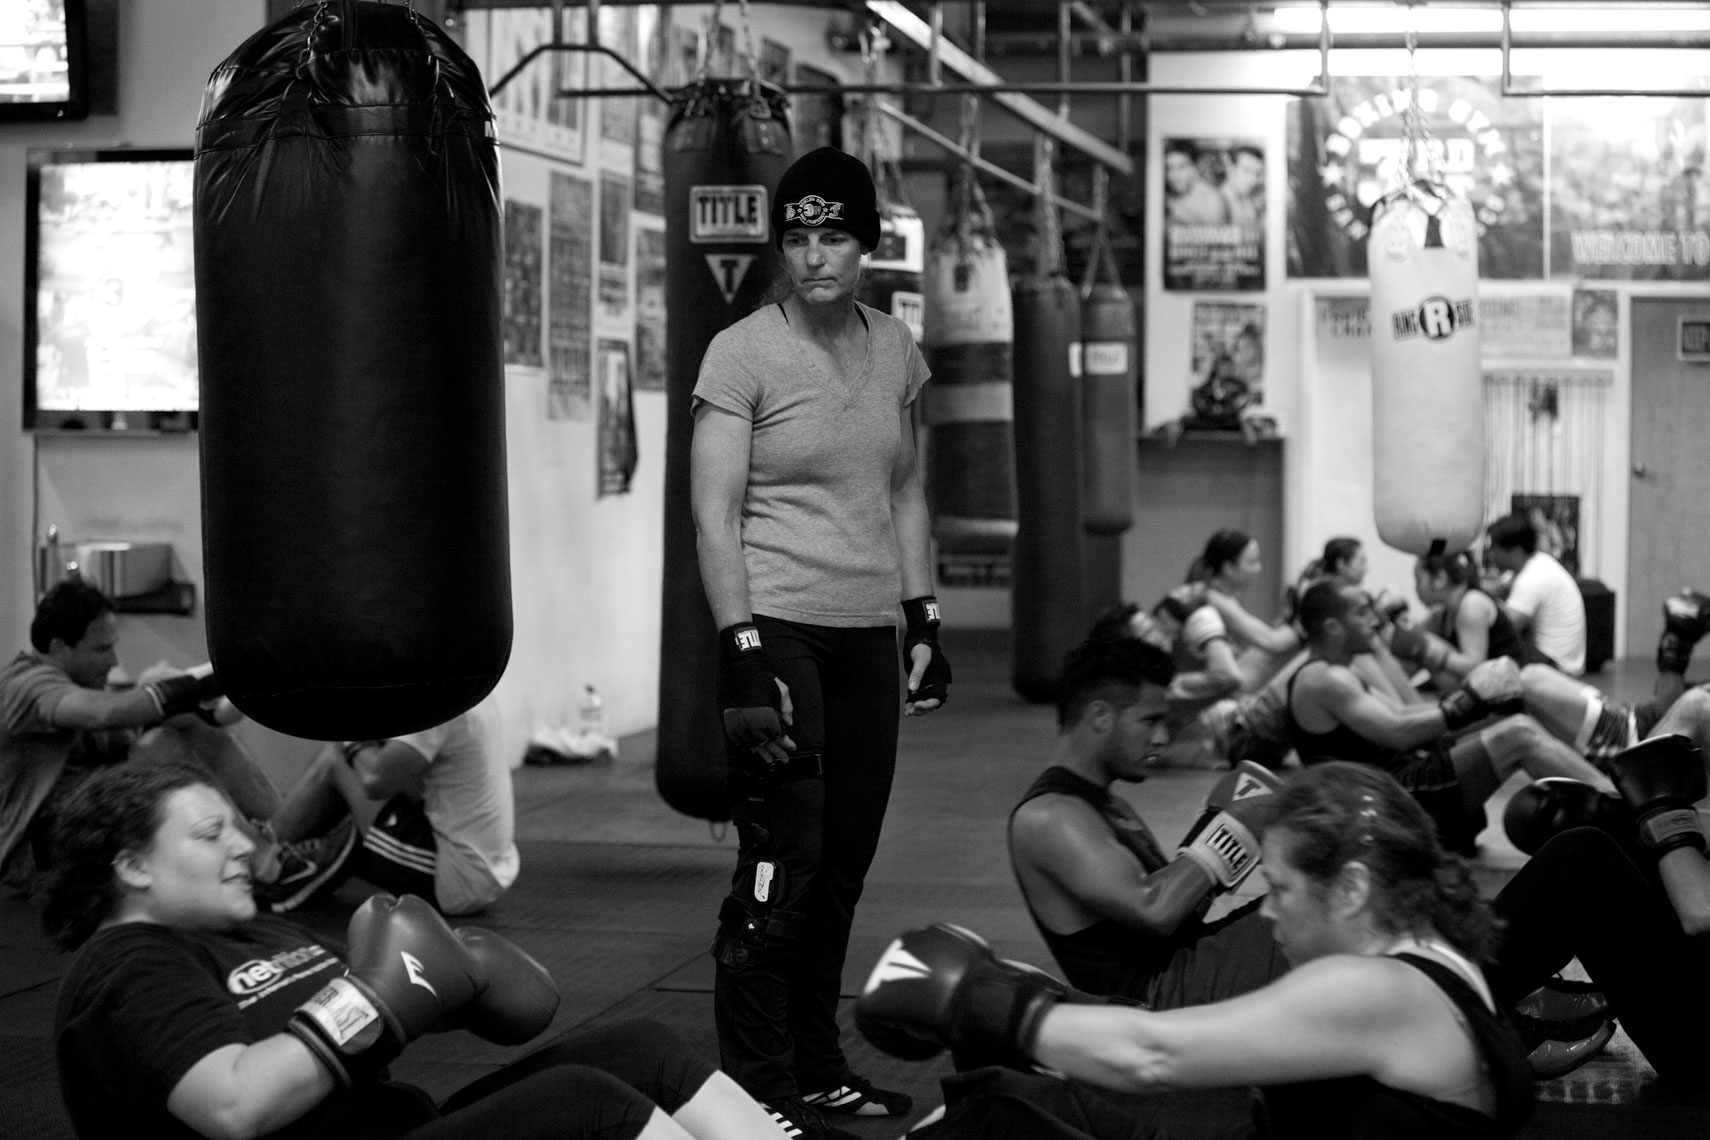 Woman Boxer also Instructs